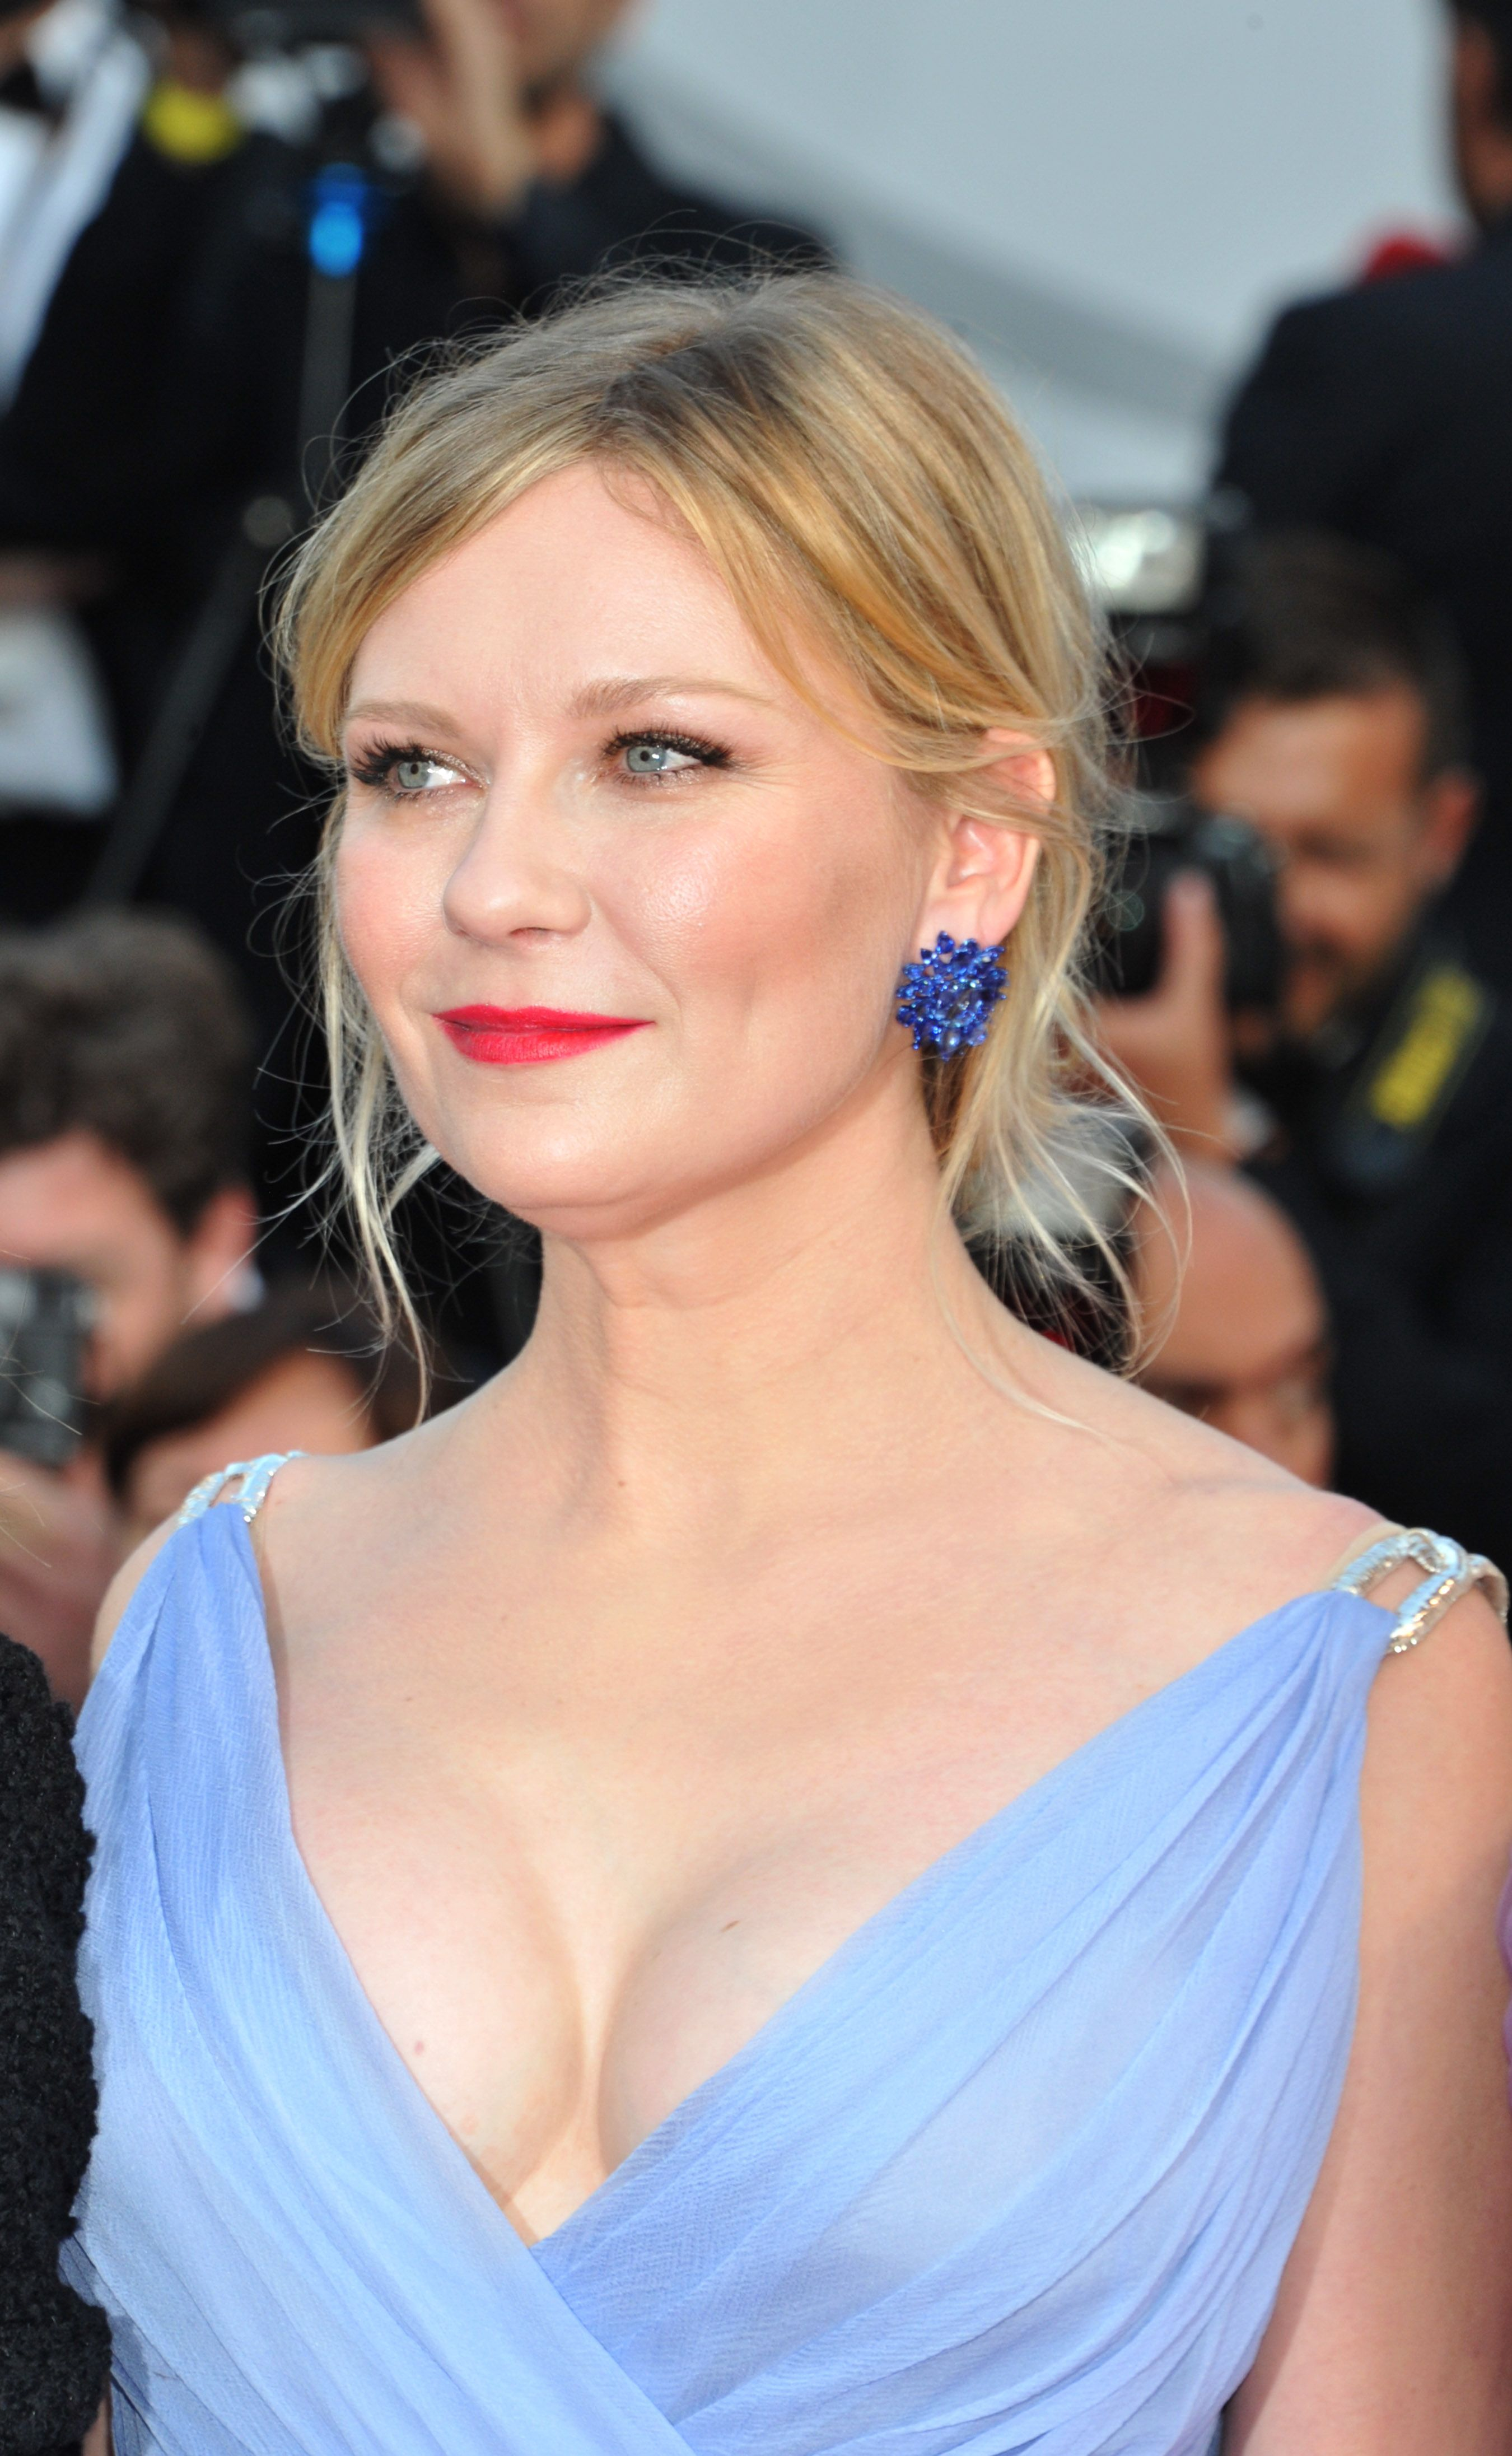 Celebrites Kirsten Dunst nude photos 2019